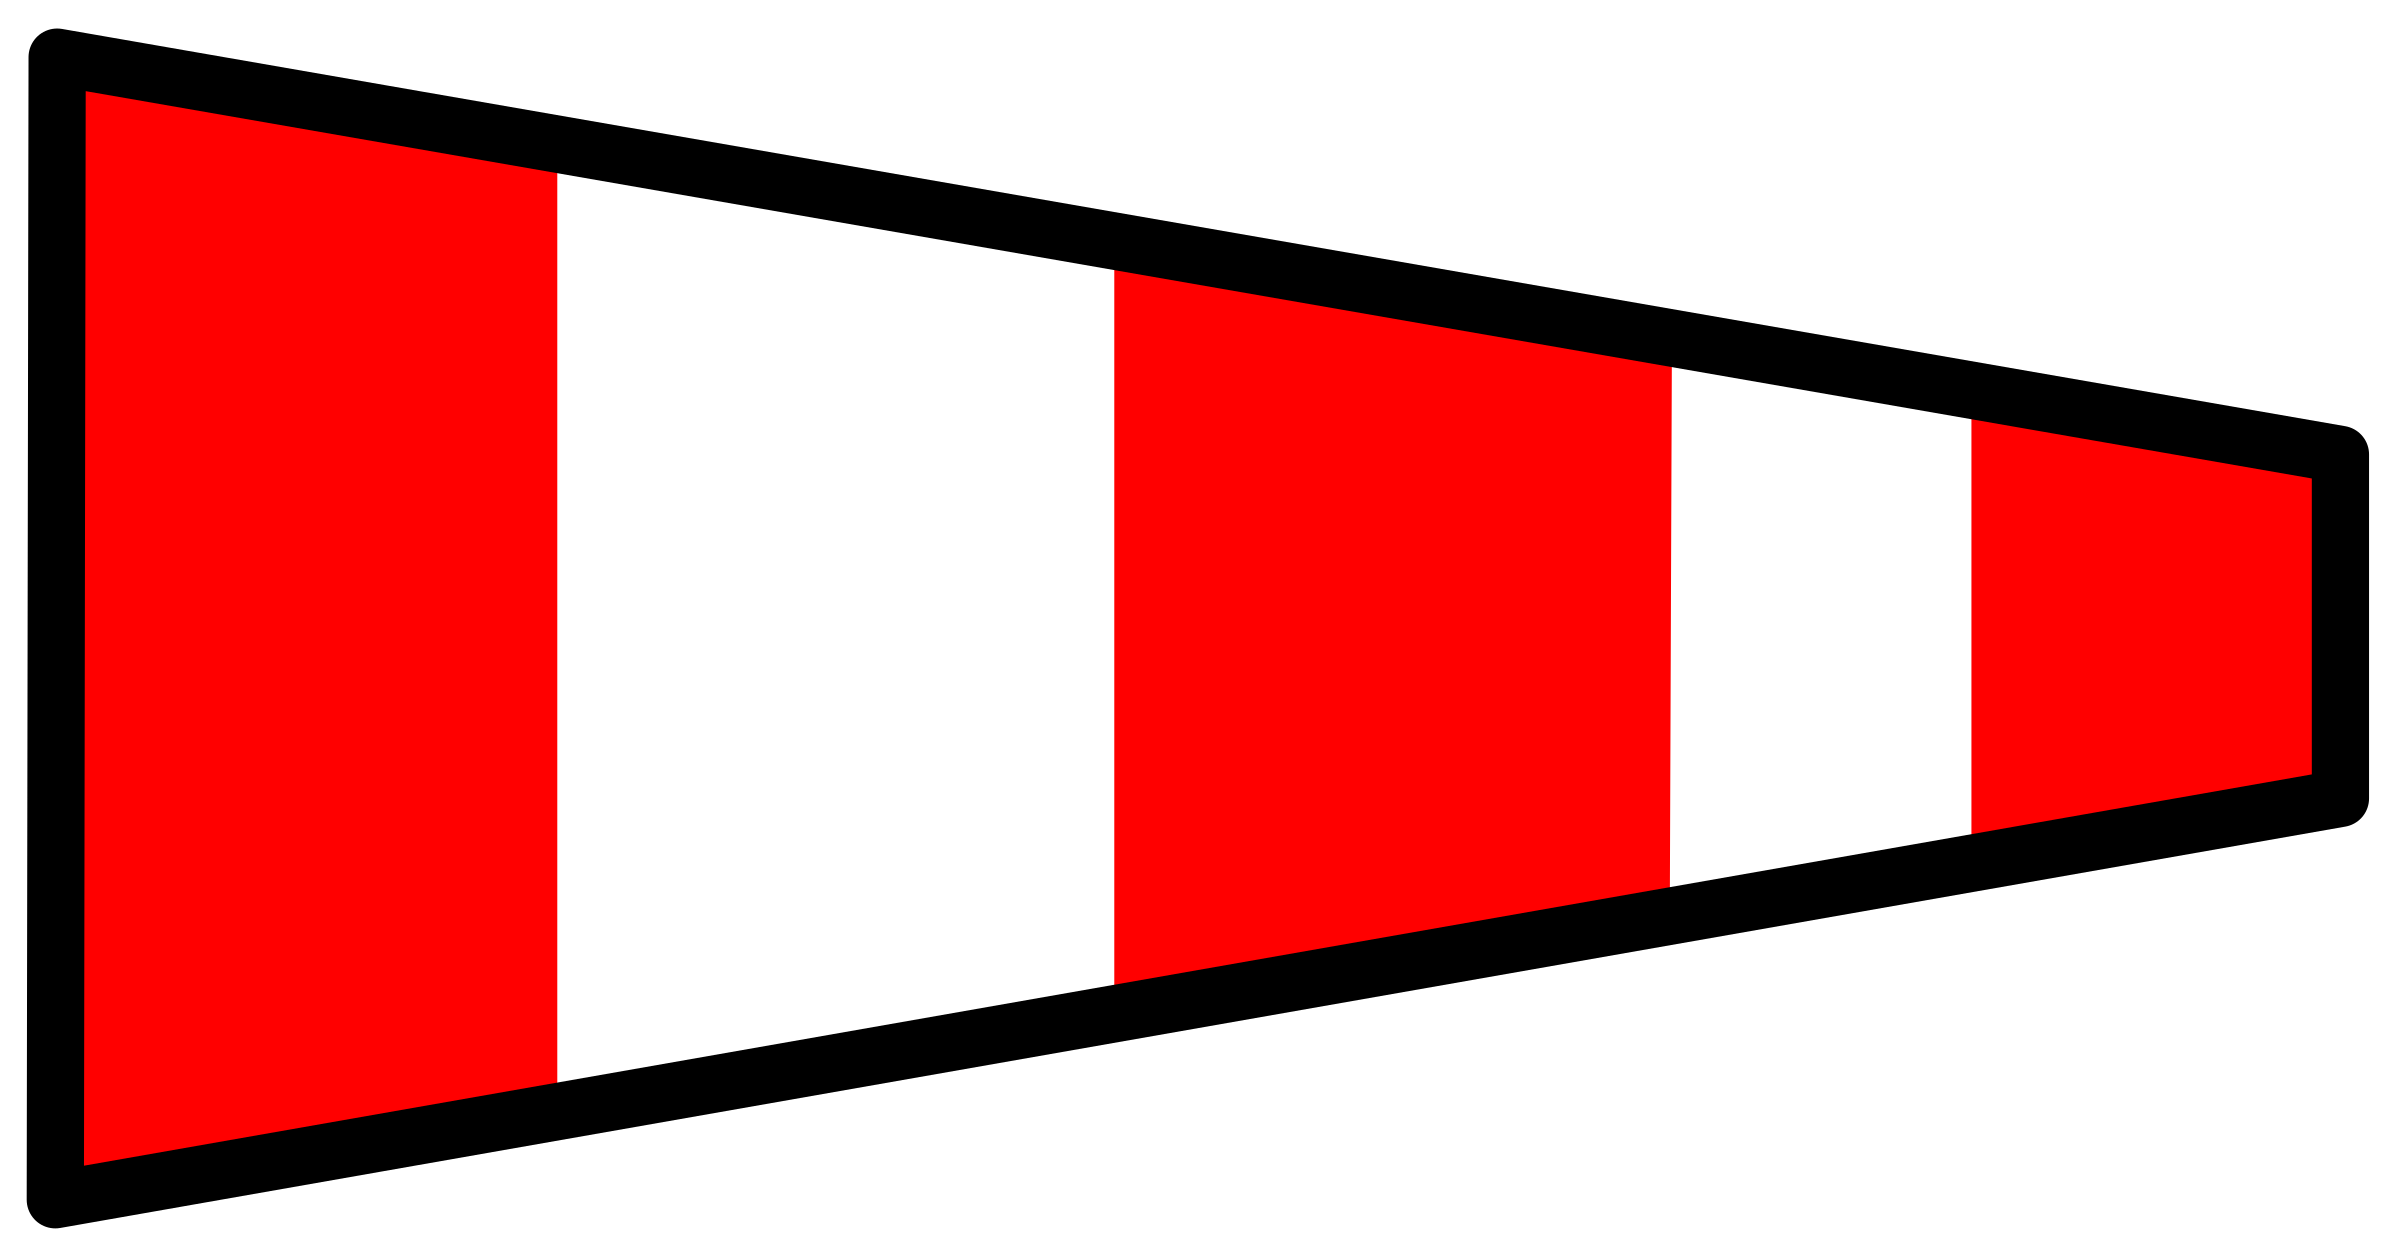 Pennant svg yellow flag. Signal answering icons png